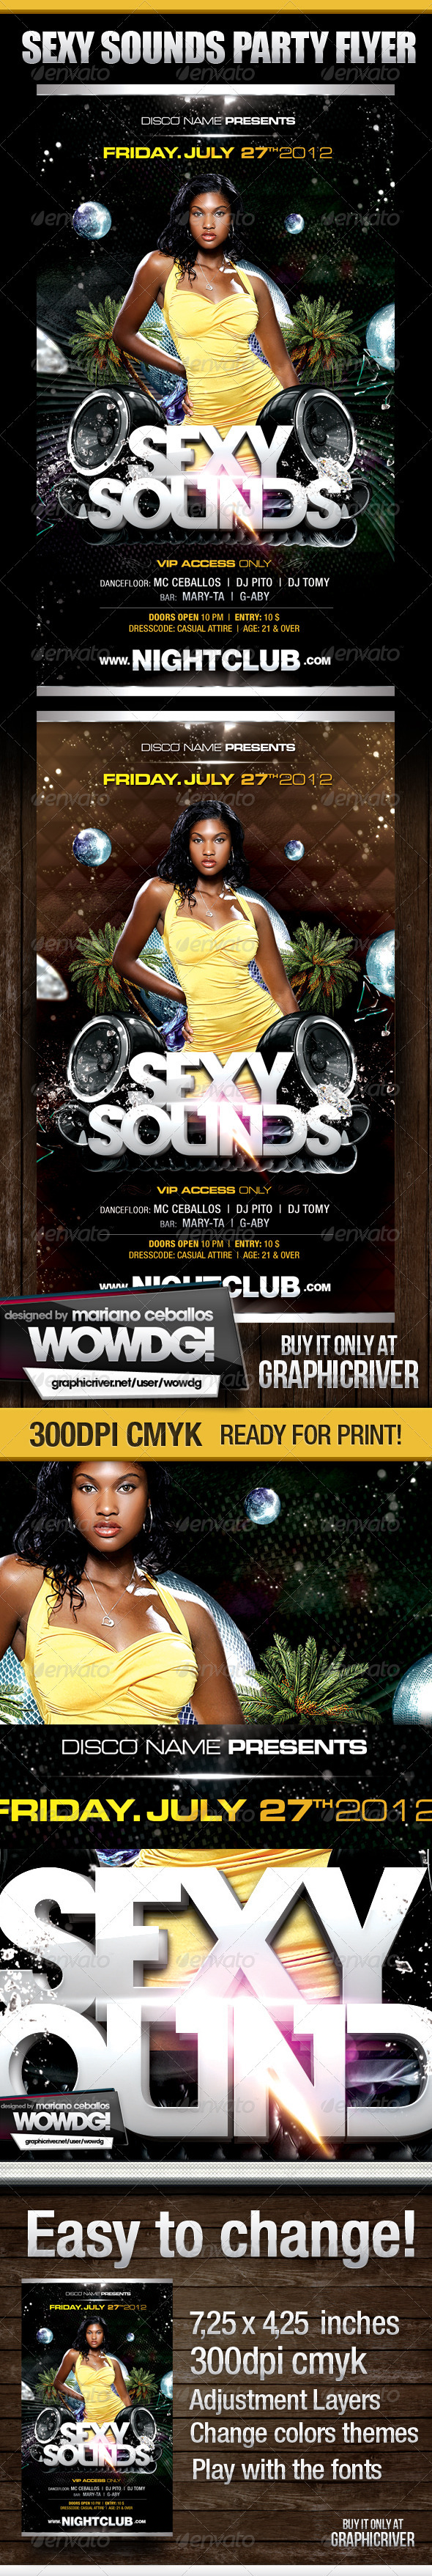 Sexy Sounds Party Flyer - Flyers Print Templates